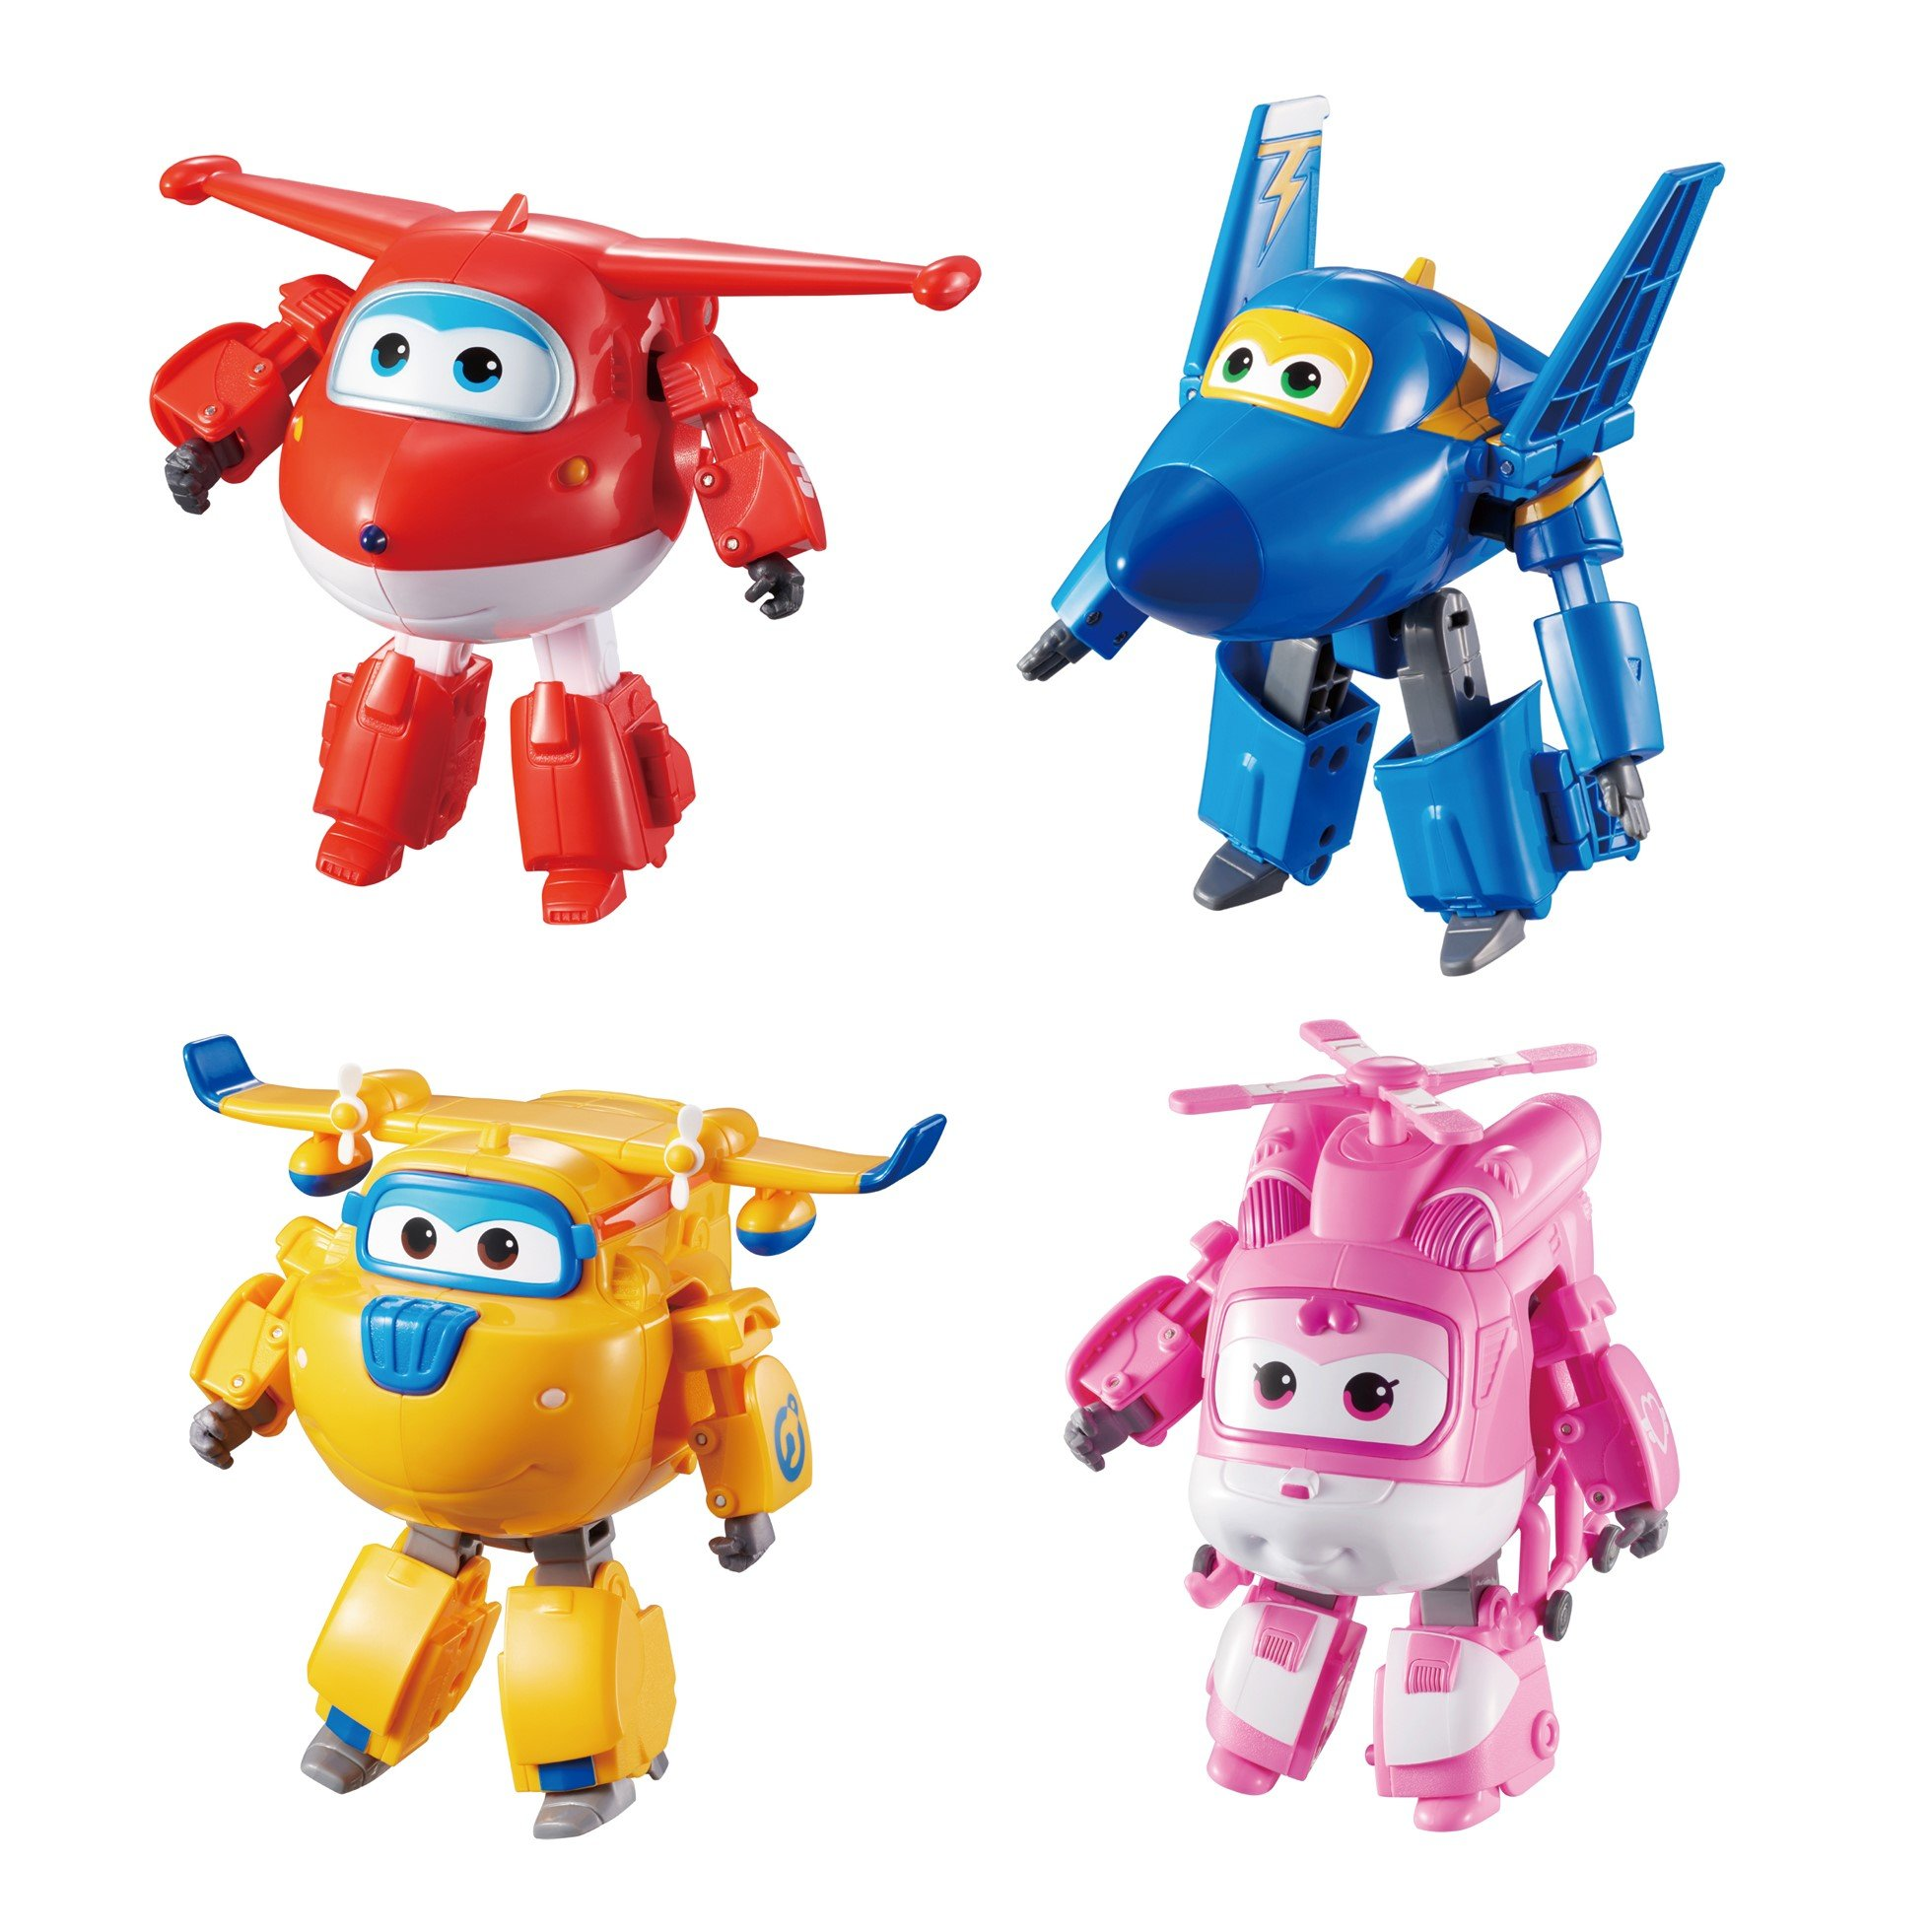 Super Wings Transforming Toy Figure 4 Pack | Jett, Donnie, Dizzy, and Jerome | , 5'' Scale